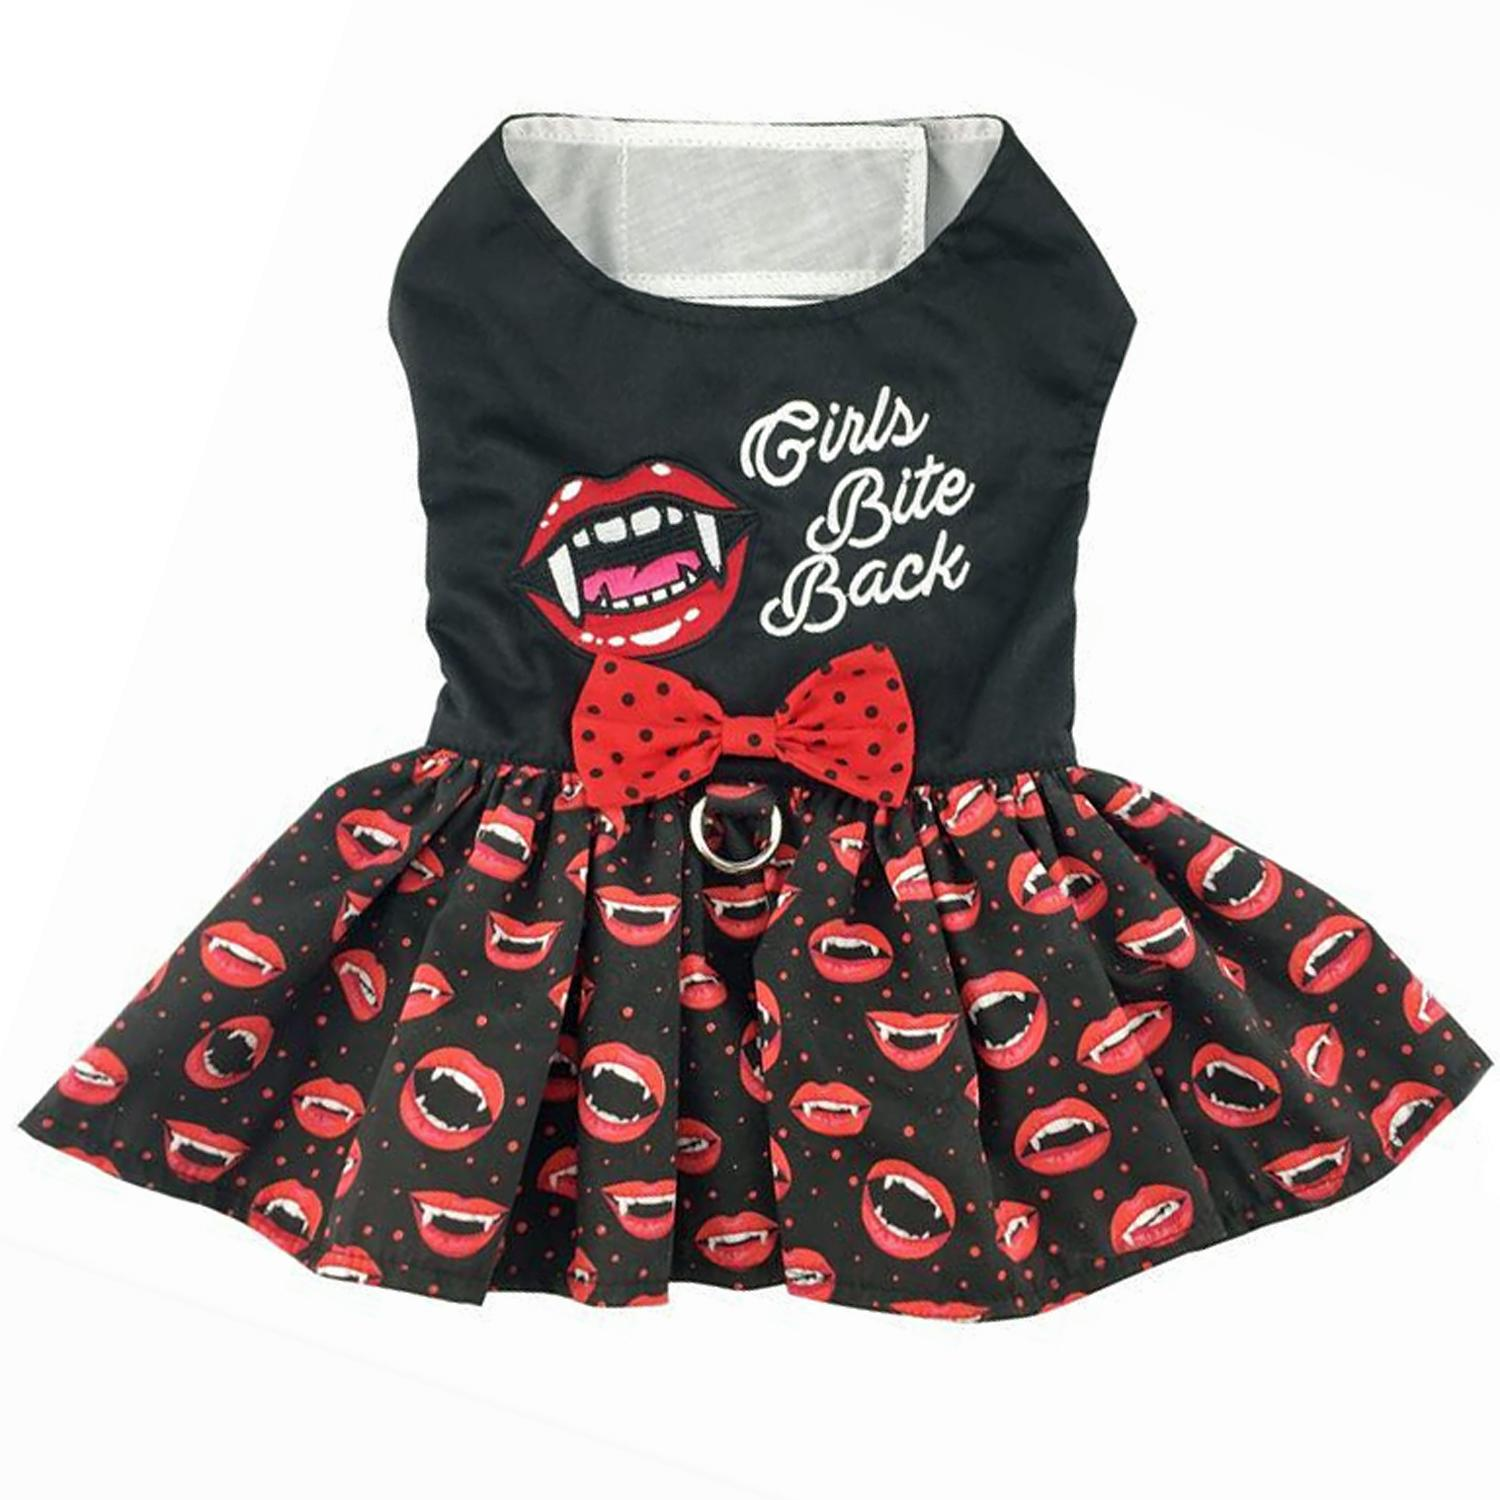 Halloween Dog Harness Dress by Doggie Design - Girls Bite Back